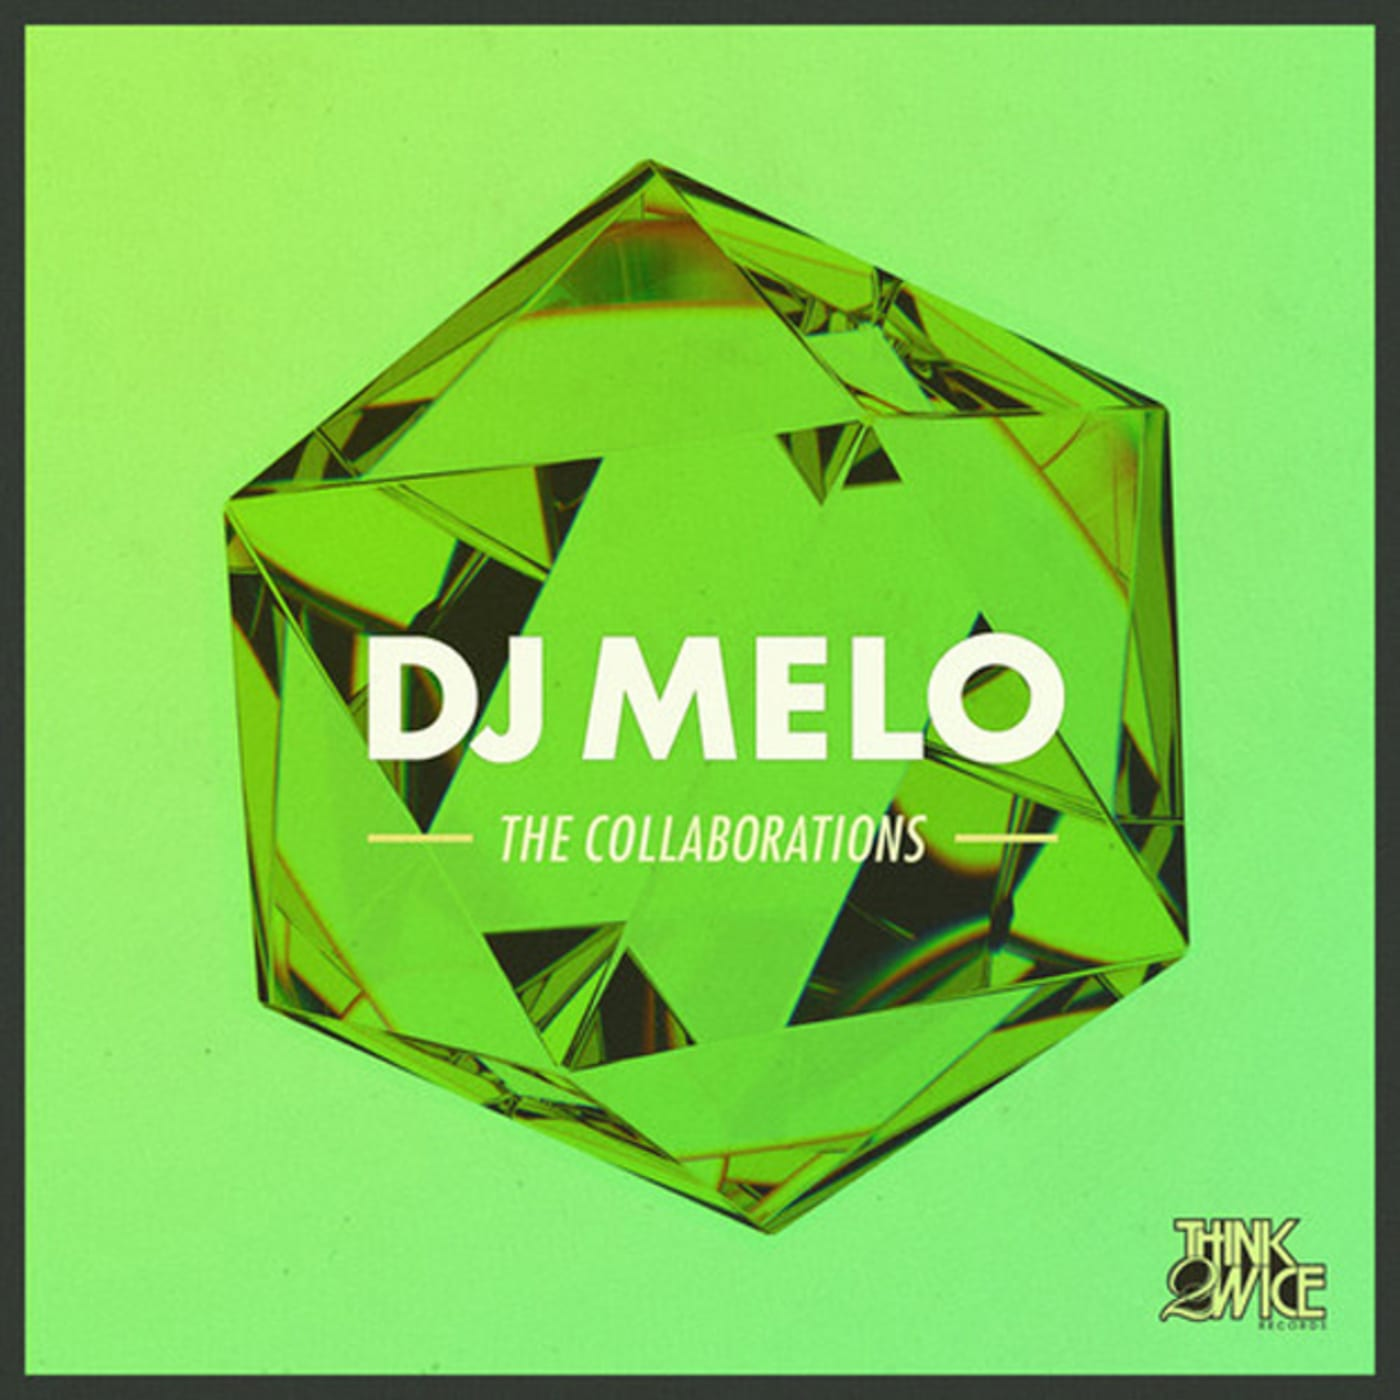 dj melo the collaborations